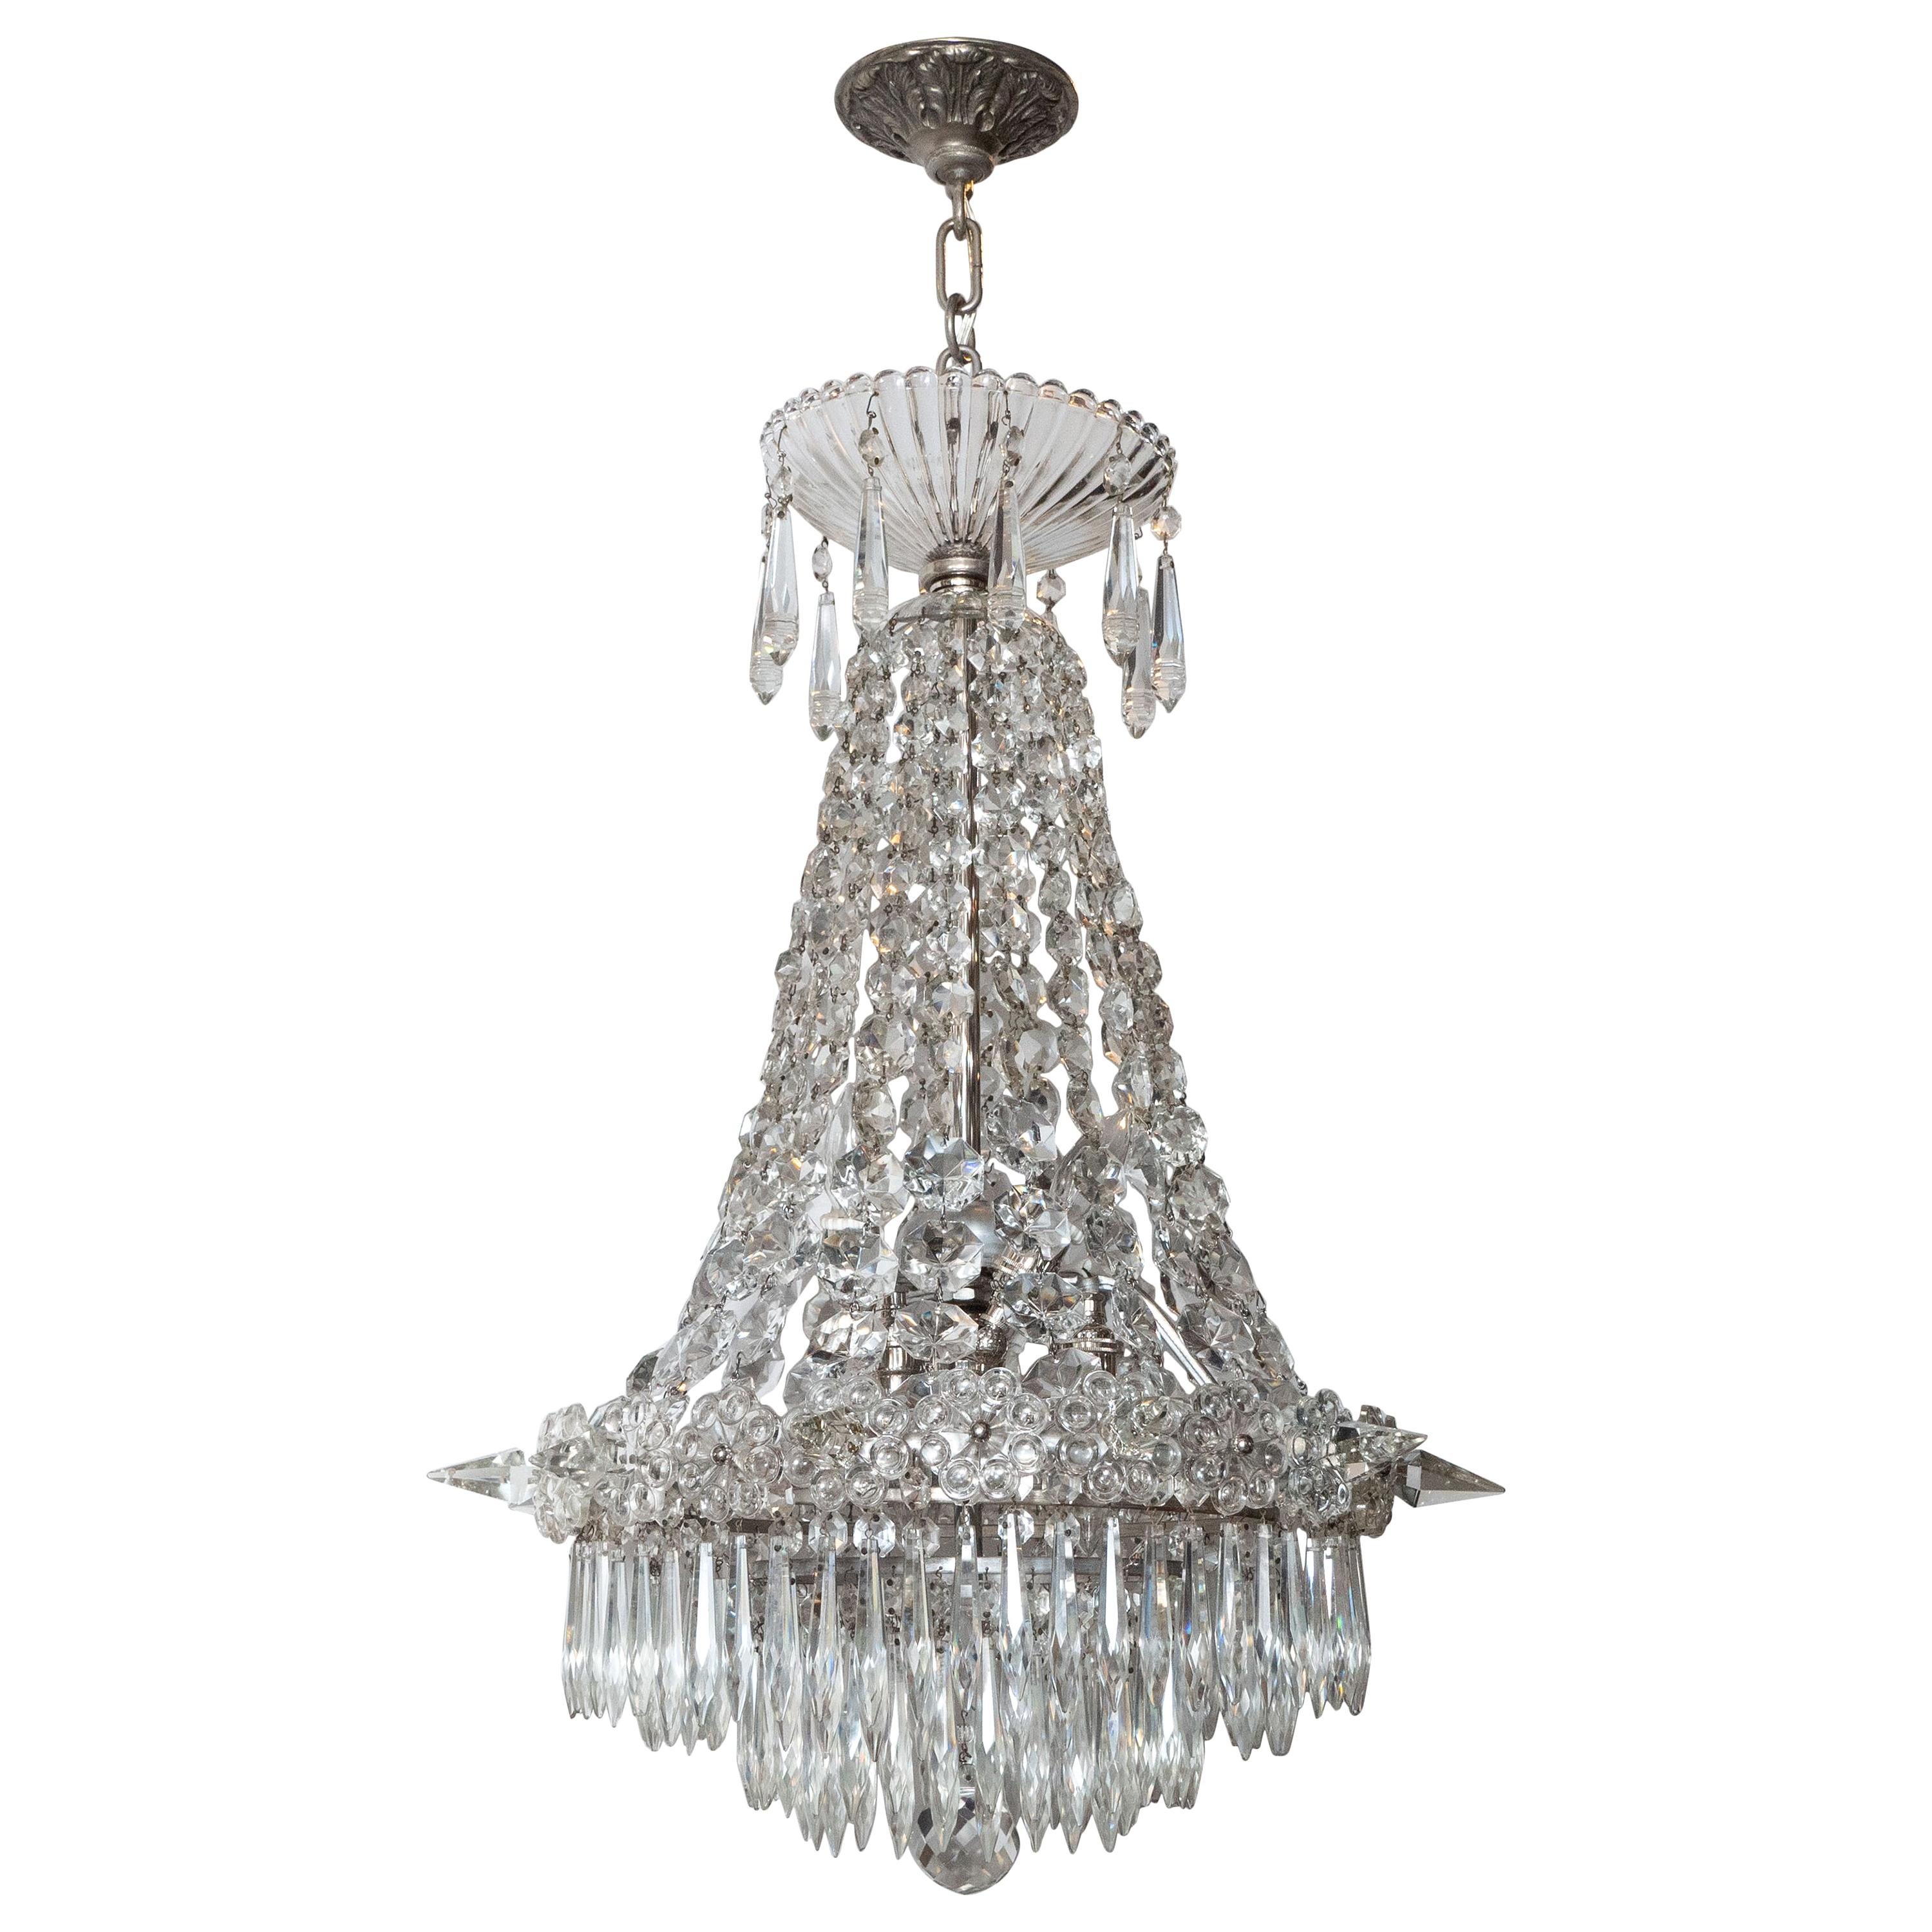 1940s Hollywood Regency Cut & Beveled Crystal Chandelier with Silvered Fittings